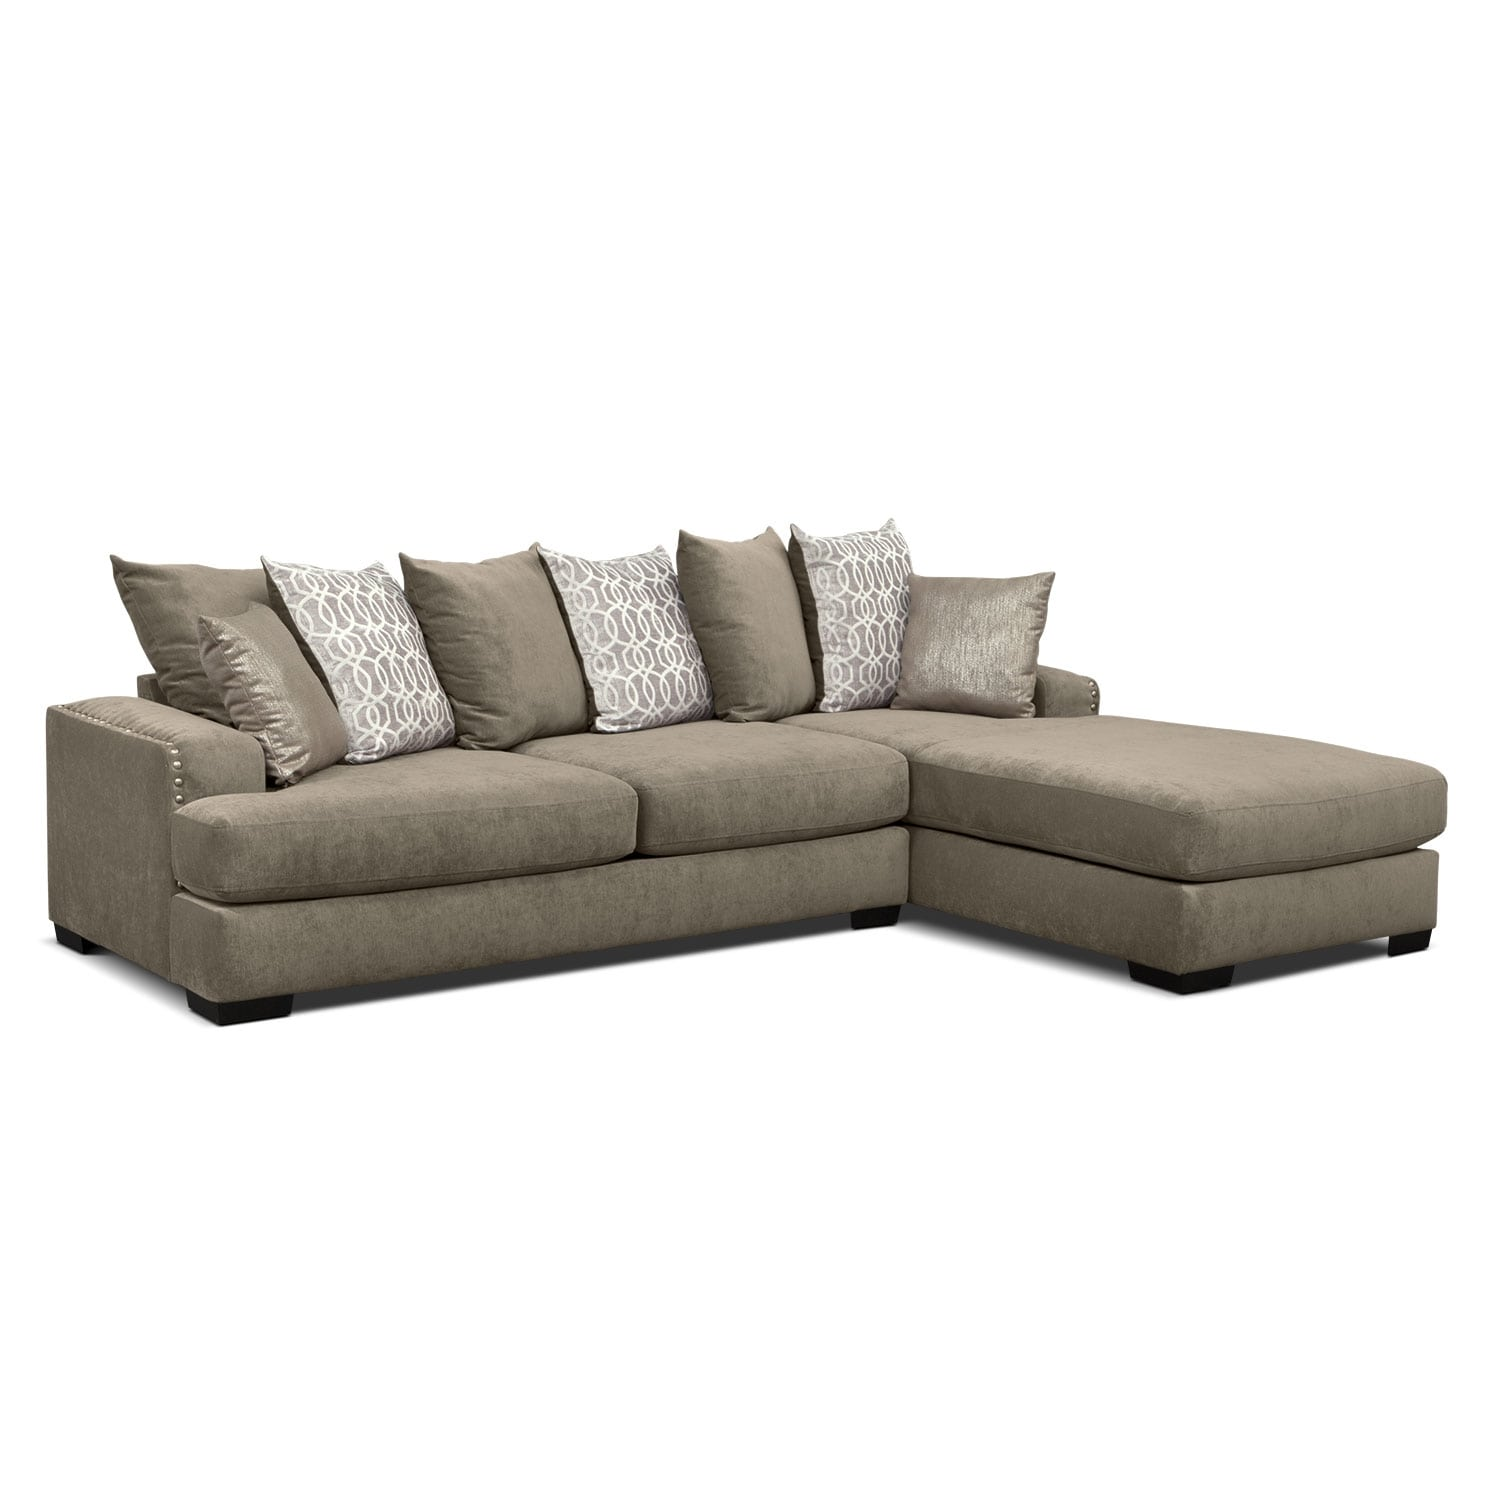 Living Room Furniture Sectionals Sectional Sofas Value City Funiture Value City Furniture